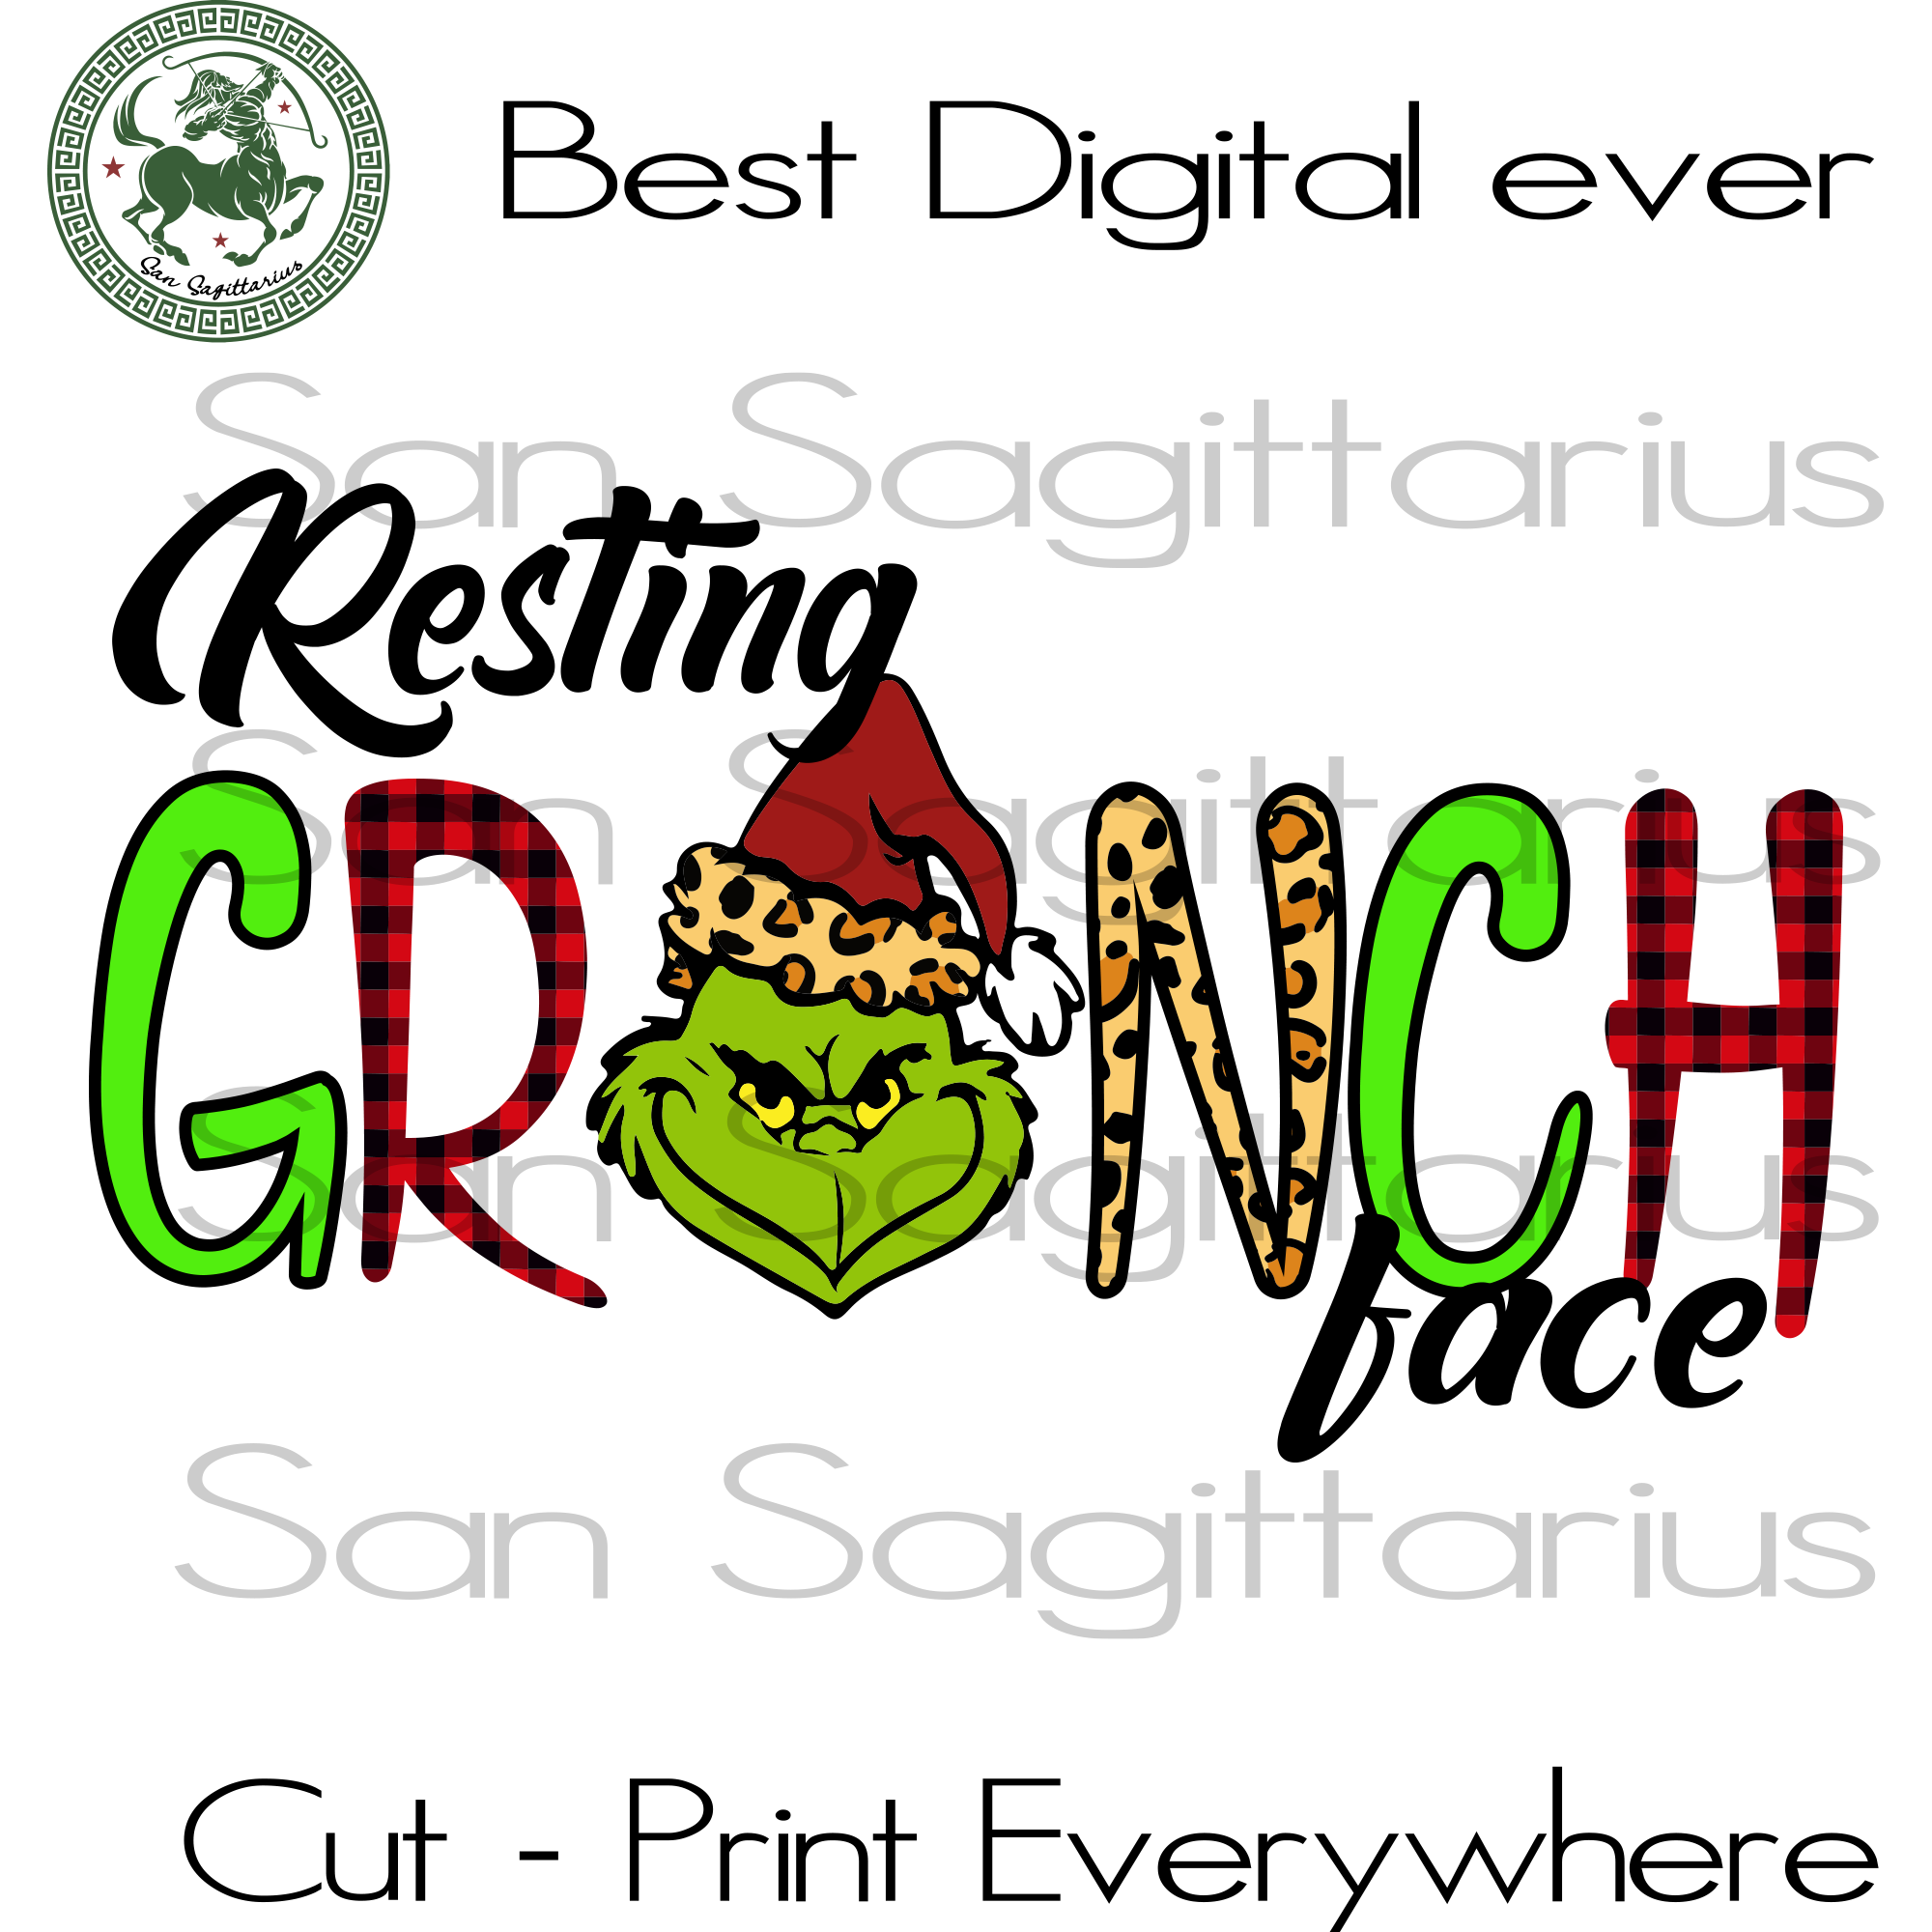 Resting Grinch Face The Grinch Svg Christmas Grinch Svg The Grinch San Sagittarius